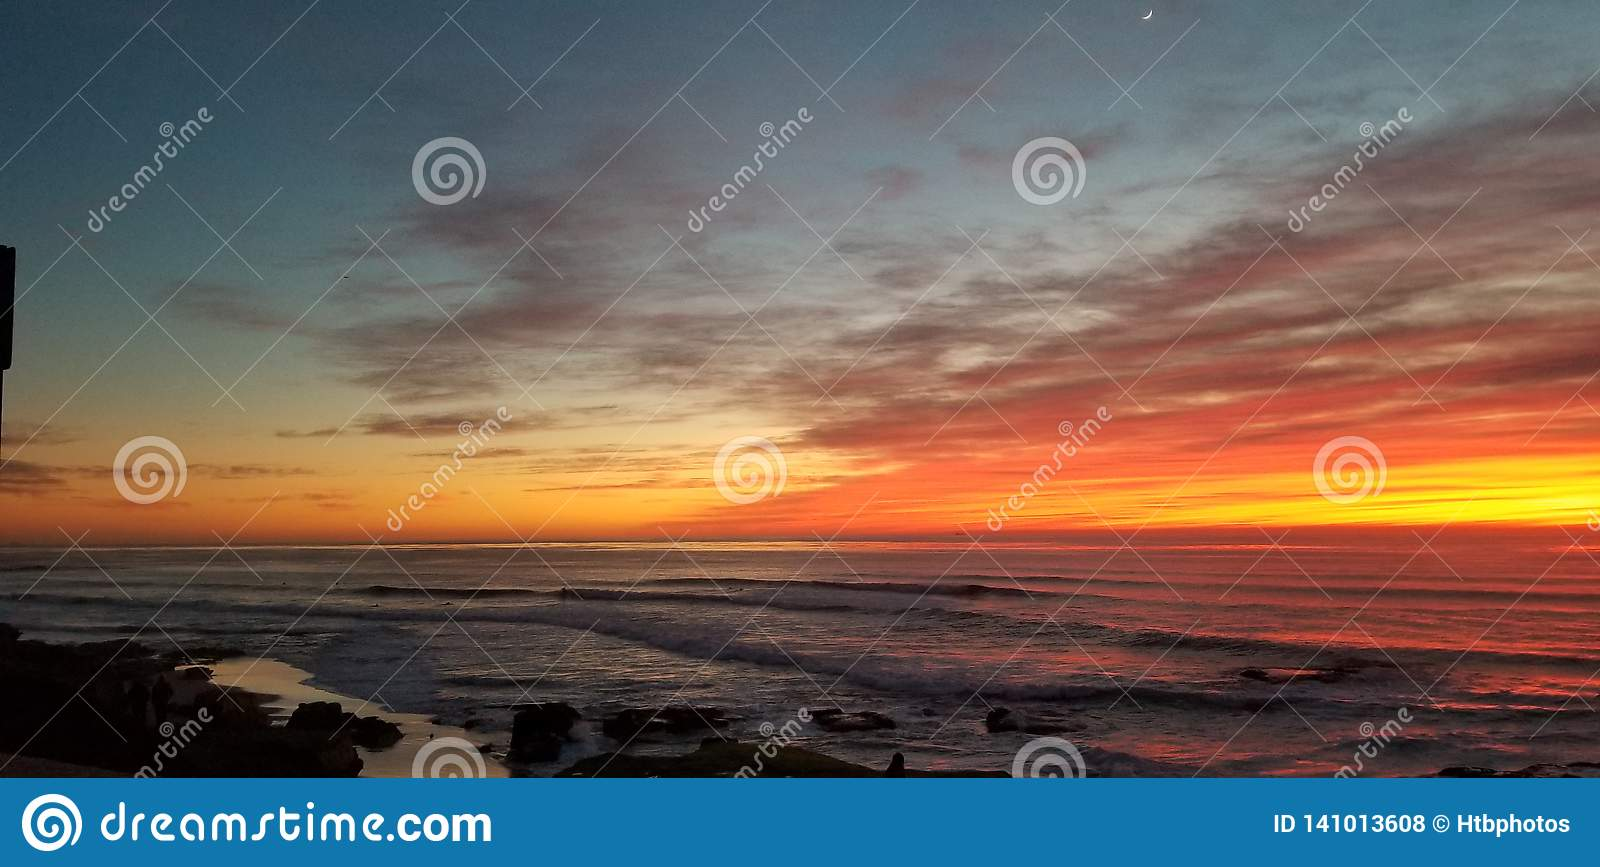 Dramatic Sunset over Pacific Ocean - Waves Crashing on the Rocks